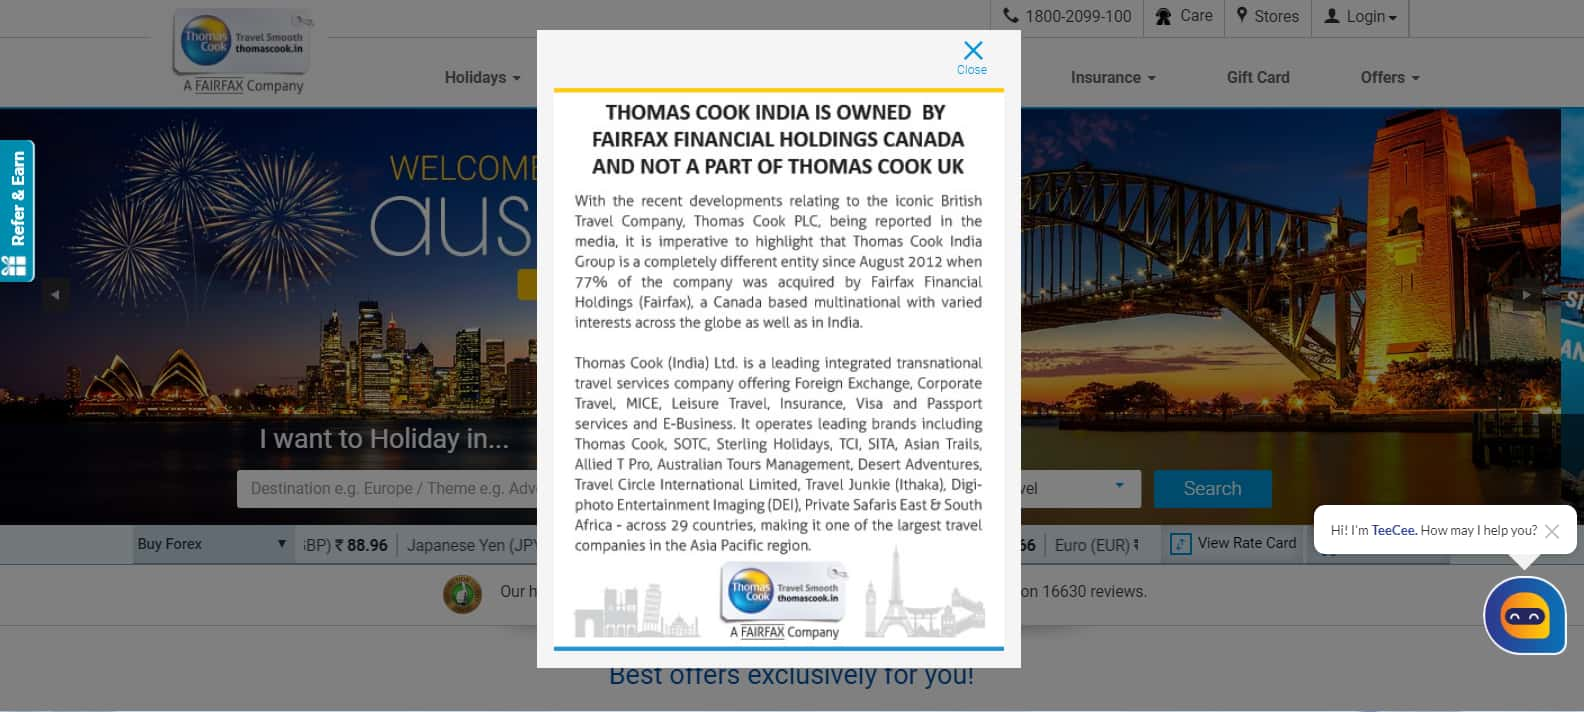 Message on Thomas Cook India website